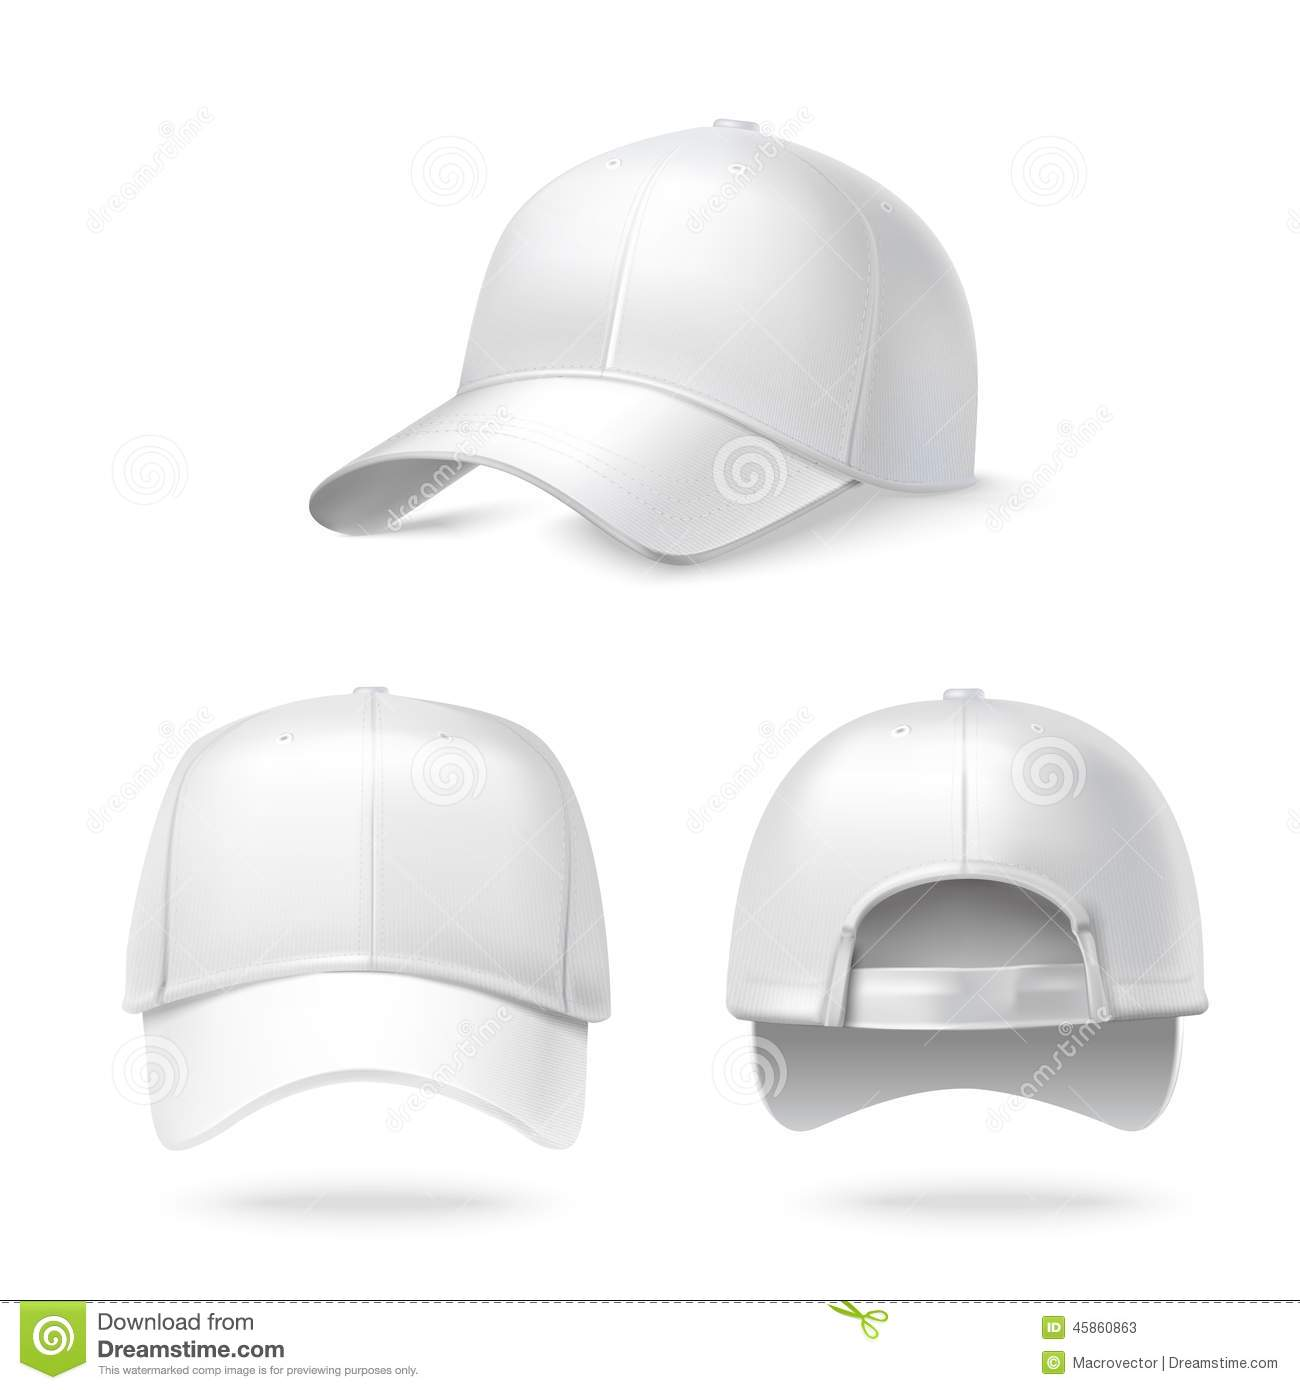 Vector men s polo shirt design template front view polo shirt with - Realistic Baseball Cap Stock Vector Image 45860863